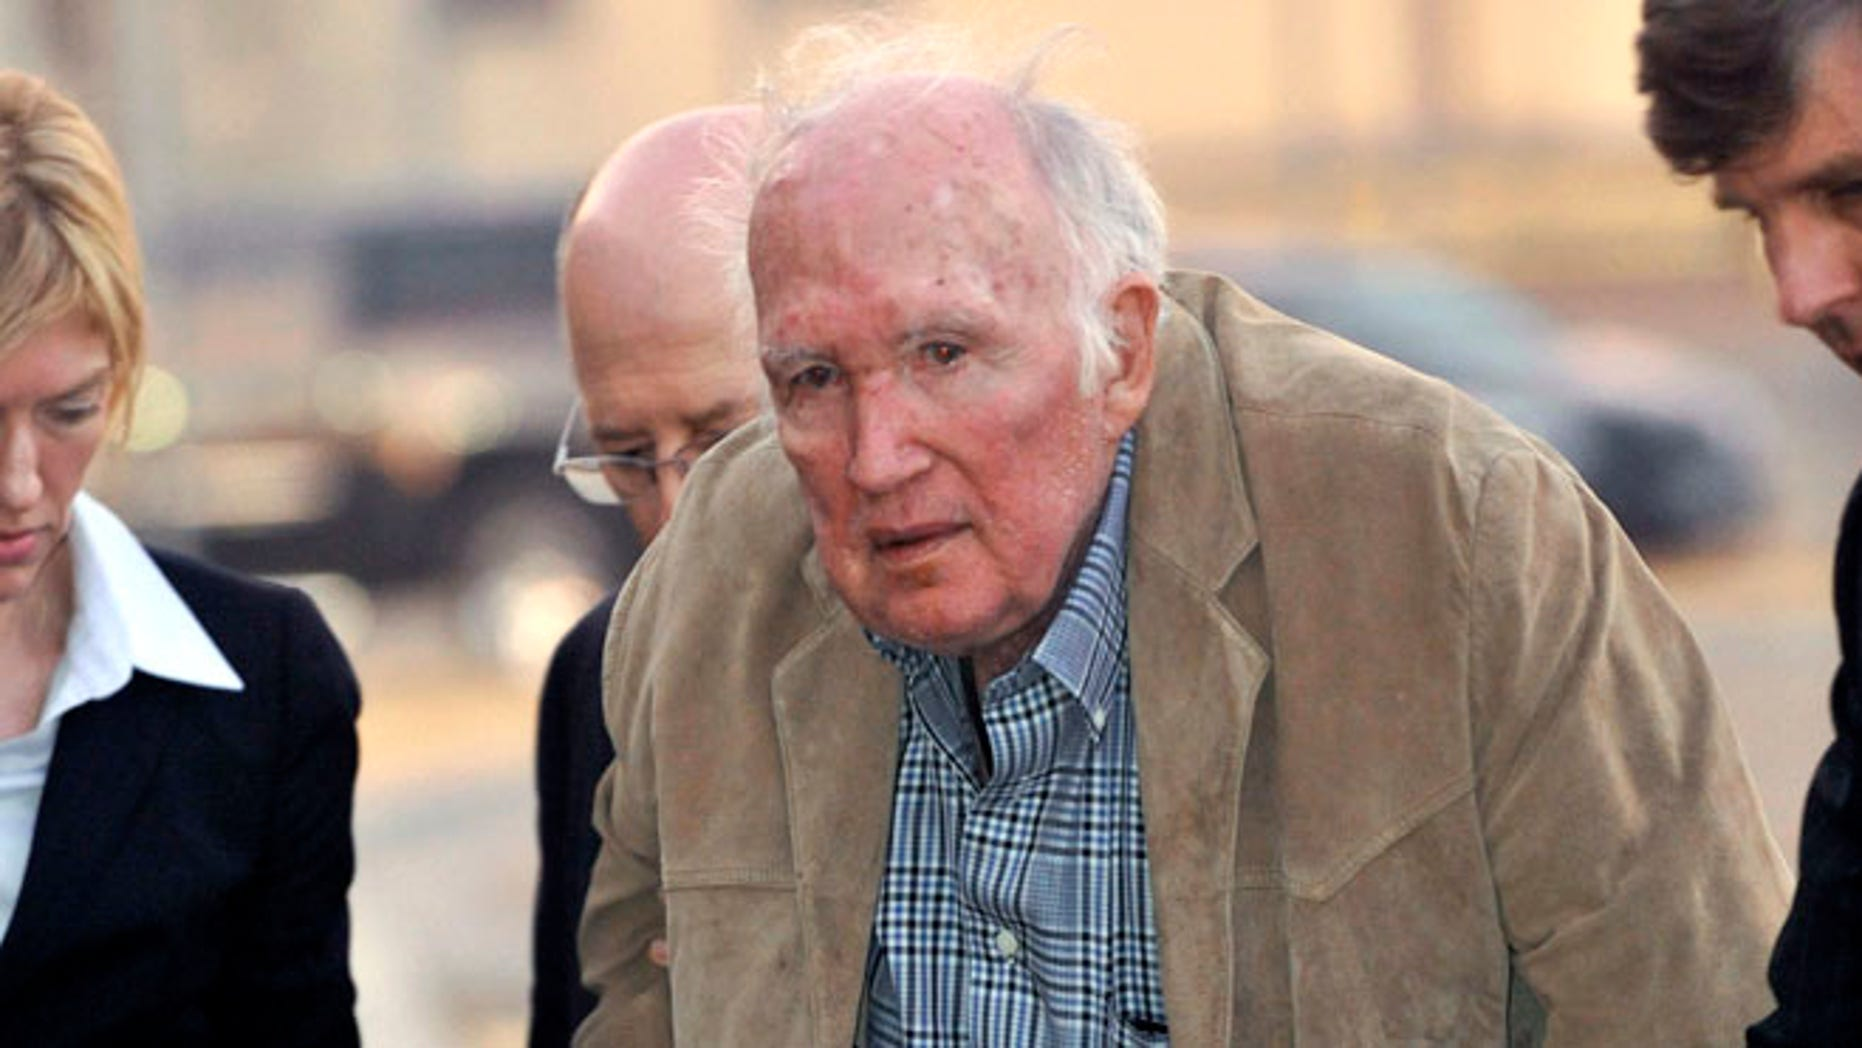 Nov. 28, 2012: Millionaire artist Stanley Marsh 3 is booked into the Potter County, Texas, Detention Center.